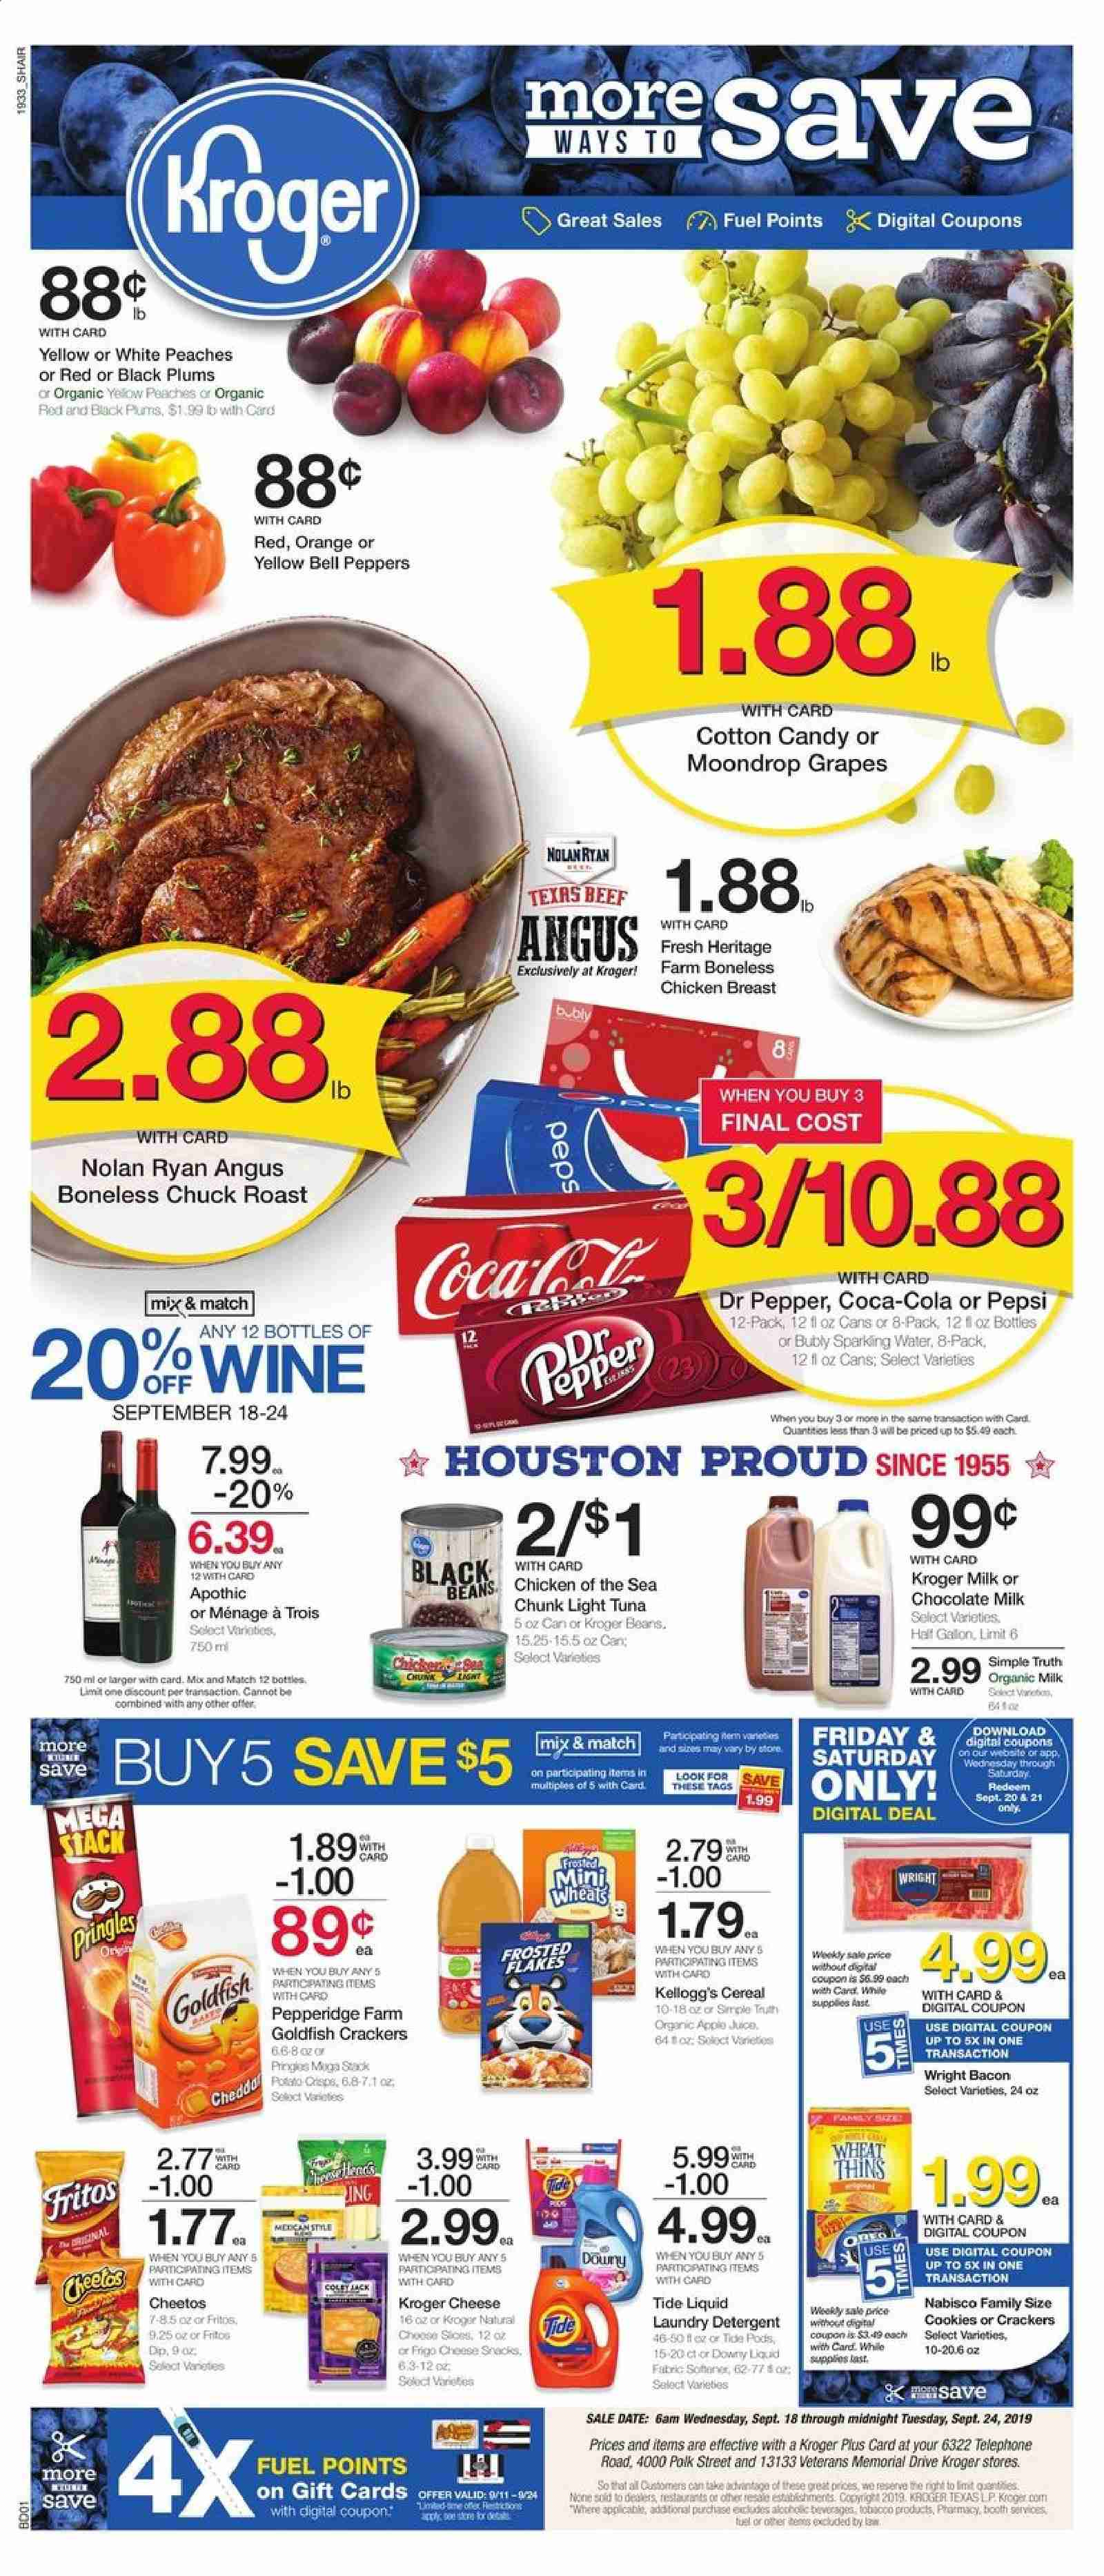 Kroger Flyer - 09.18.2019 - 09.24.2019 - Sales products - apples, bacon, beans, beef meat, bell peppers, black beans, cereals, coca-cola, cookies, cotton, crackers, detergent, fritos, fuel, grapes, milk, tide, tuna, plums, pringles, cheetos, chicken, chicken breast, peaches, pepsi, orange, organic, chocolate milk, chocolate, organic milk, cheese, candy, pepper, cereal, light tuna, wine, flakes, dr. pepper, liquid, peppers, gard, laundry detergent, roast. Page 1.